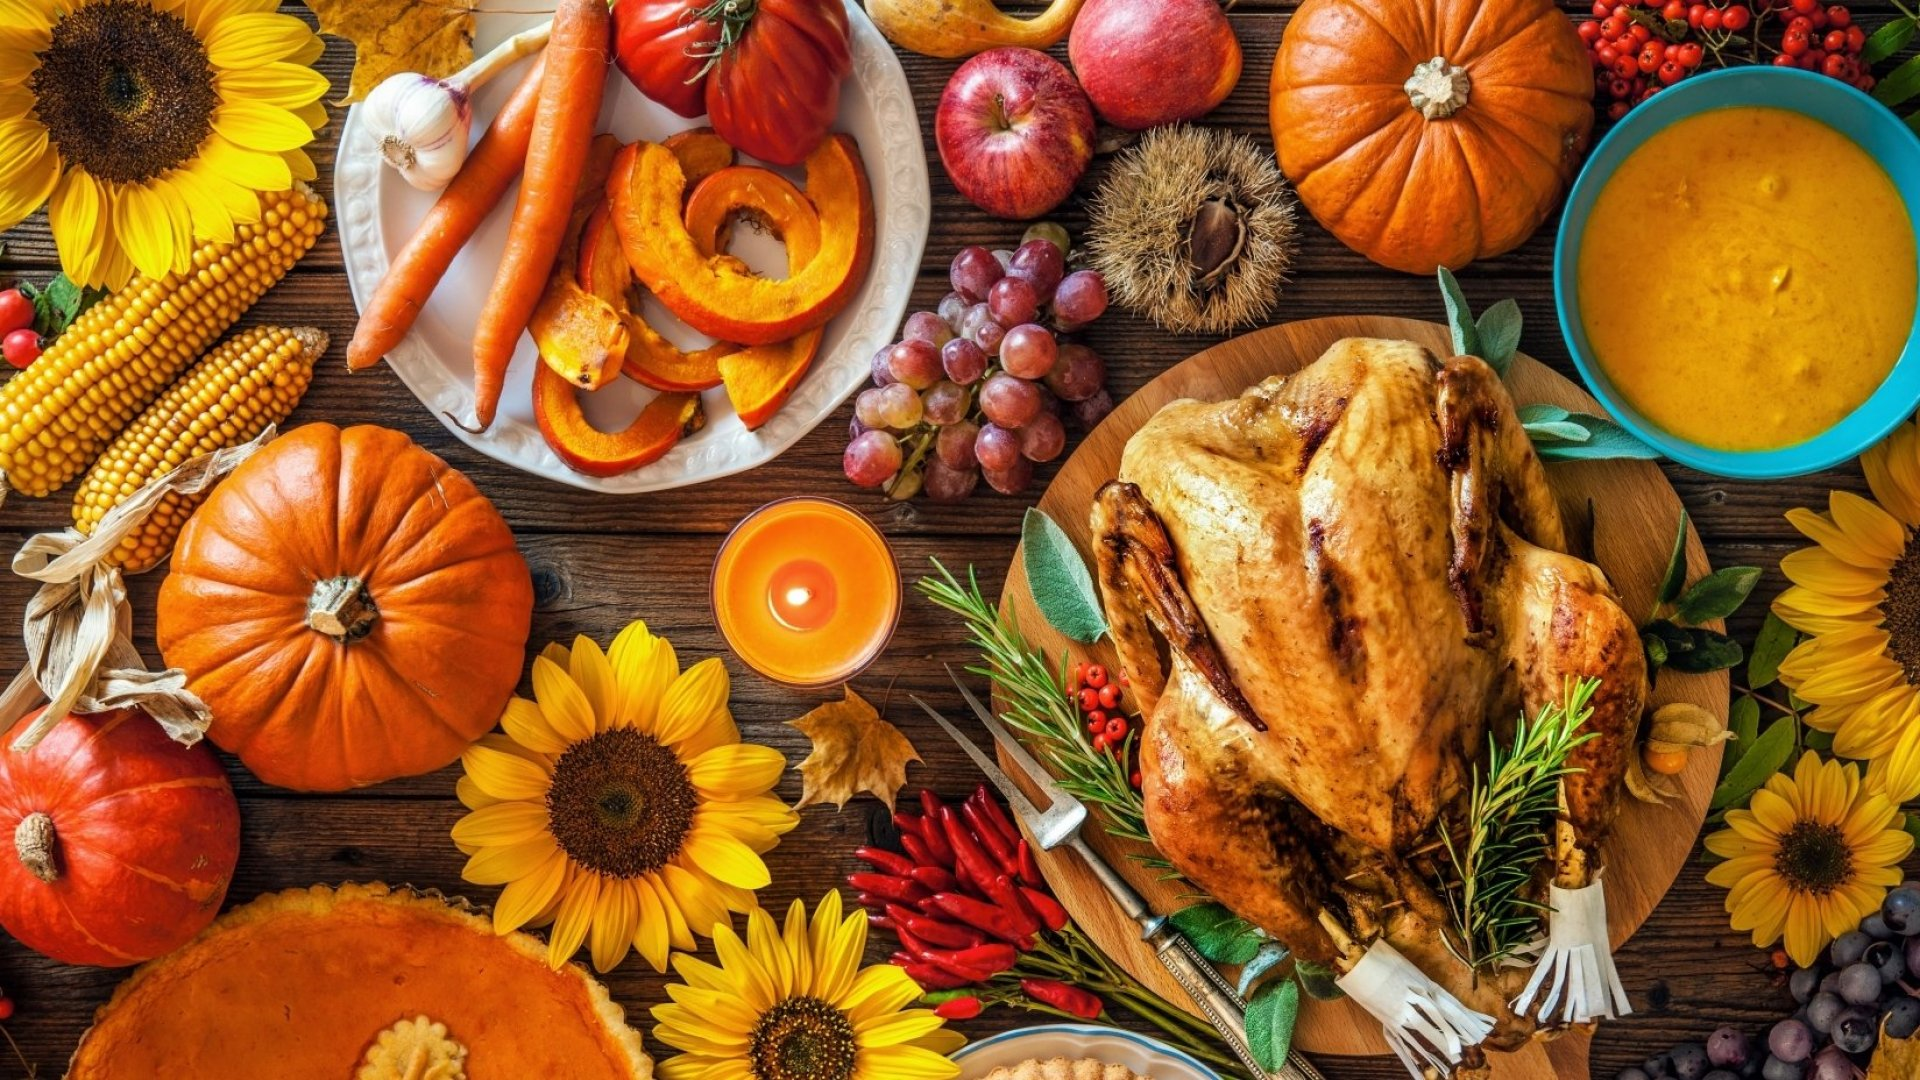 32 Simple Things to Be Grateful for in Life This Thanksgiving